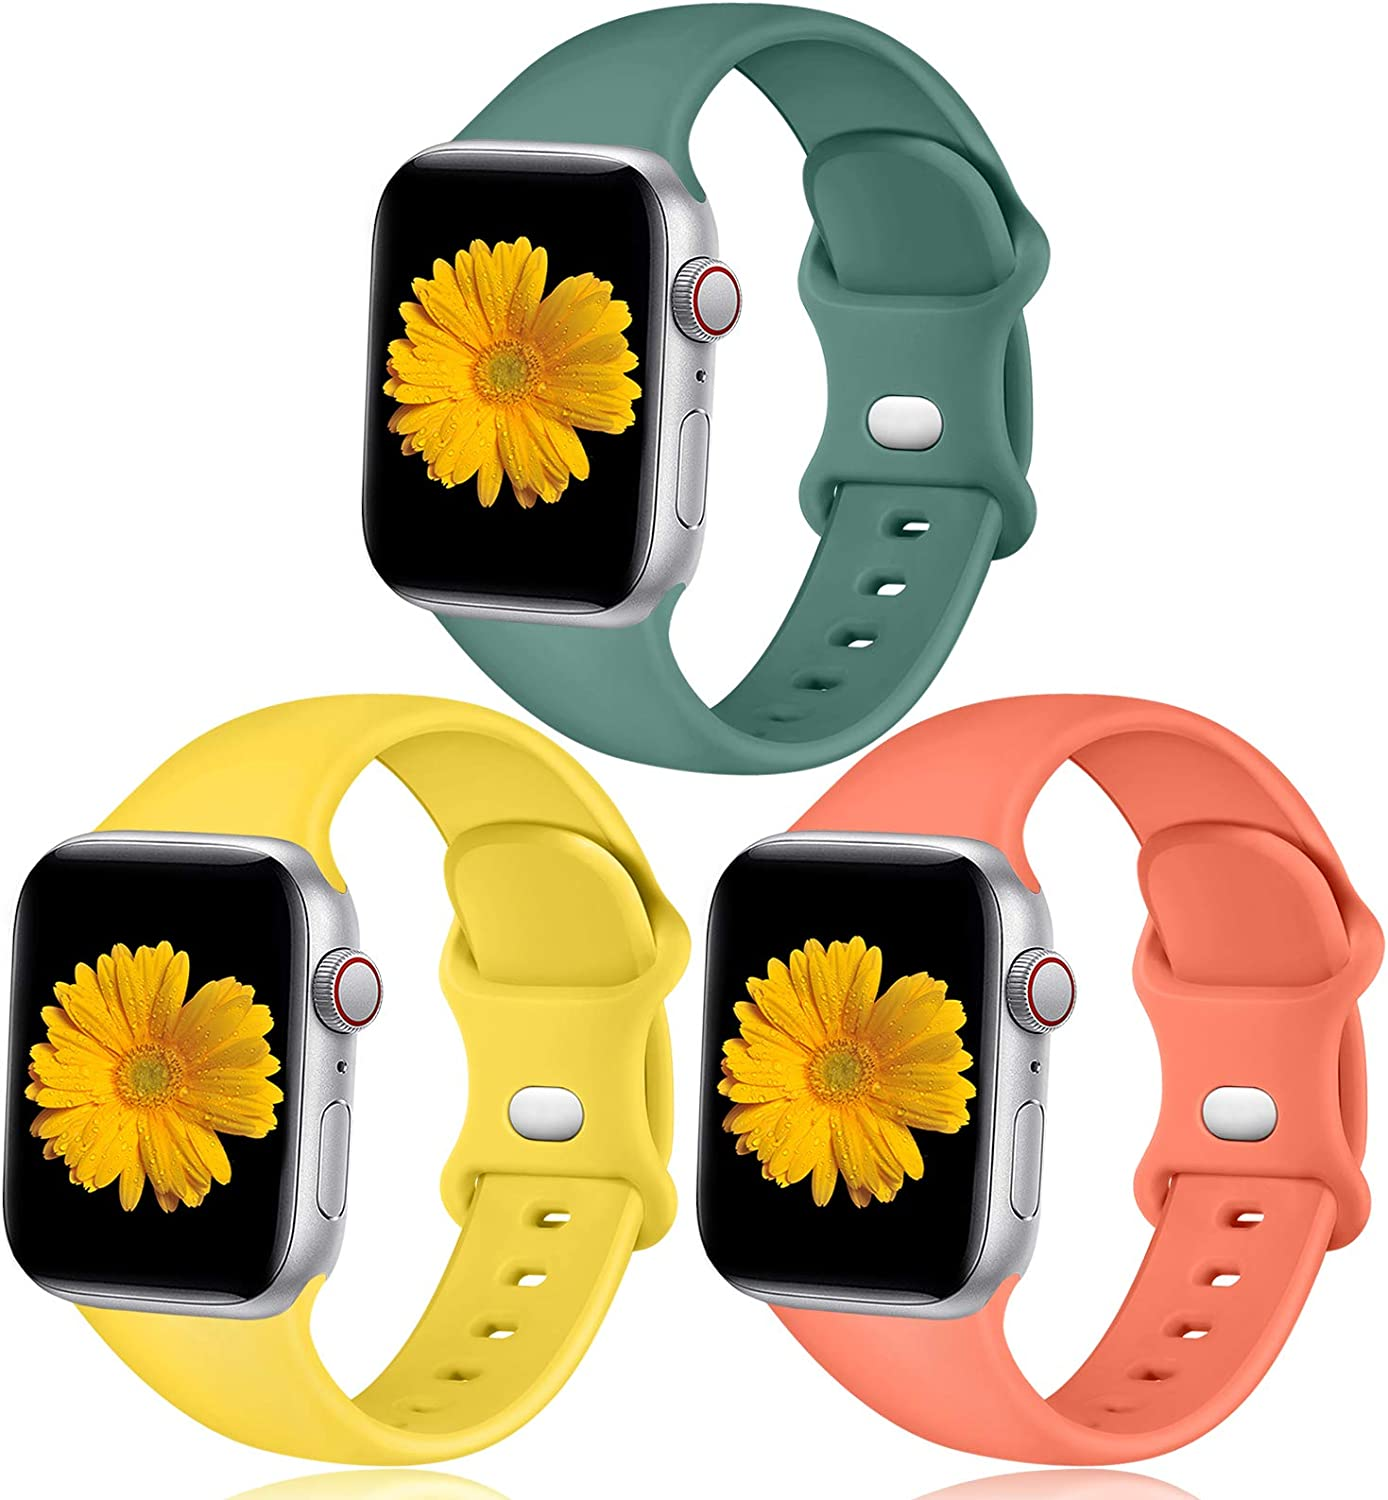 Easuny Sport Band Compatible with Apple Watch 44mm 42mm Women Men - Sport Silicone Wristbands Strap Replacement Accessories for iWatch Series 6/5/4/3/2/1,3 Pack